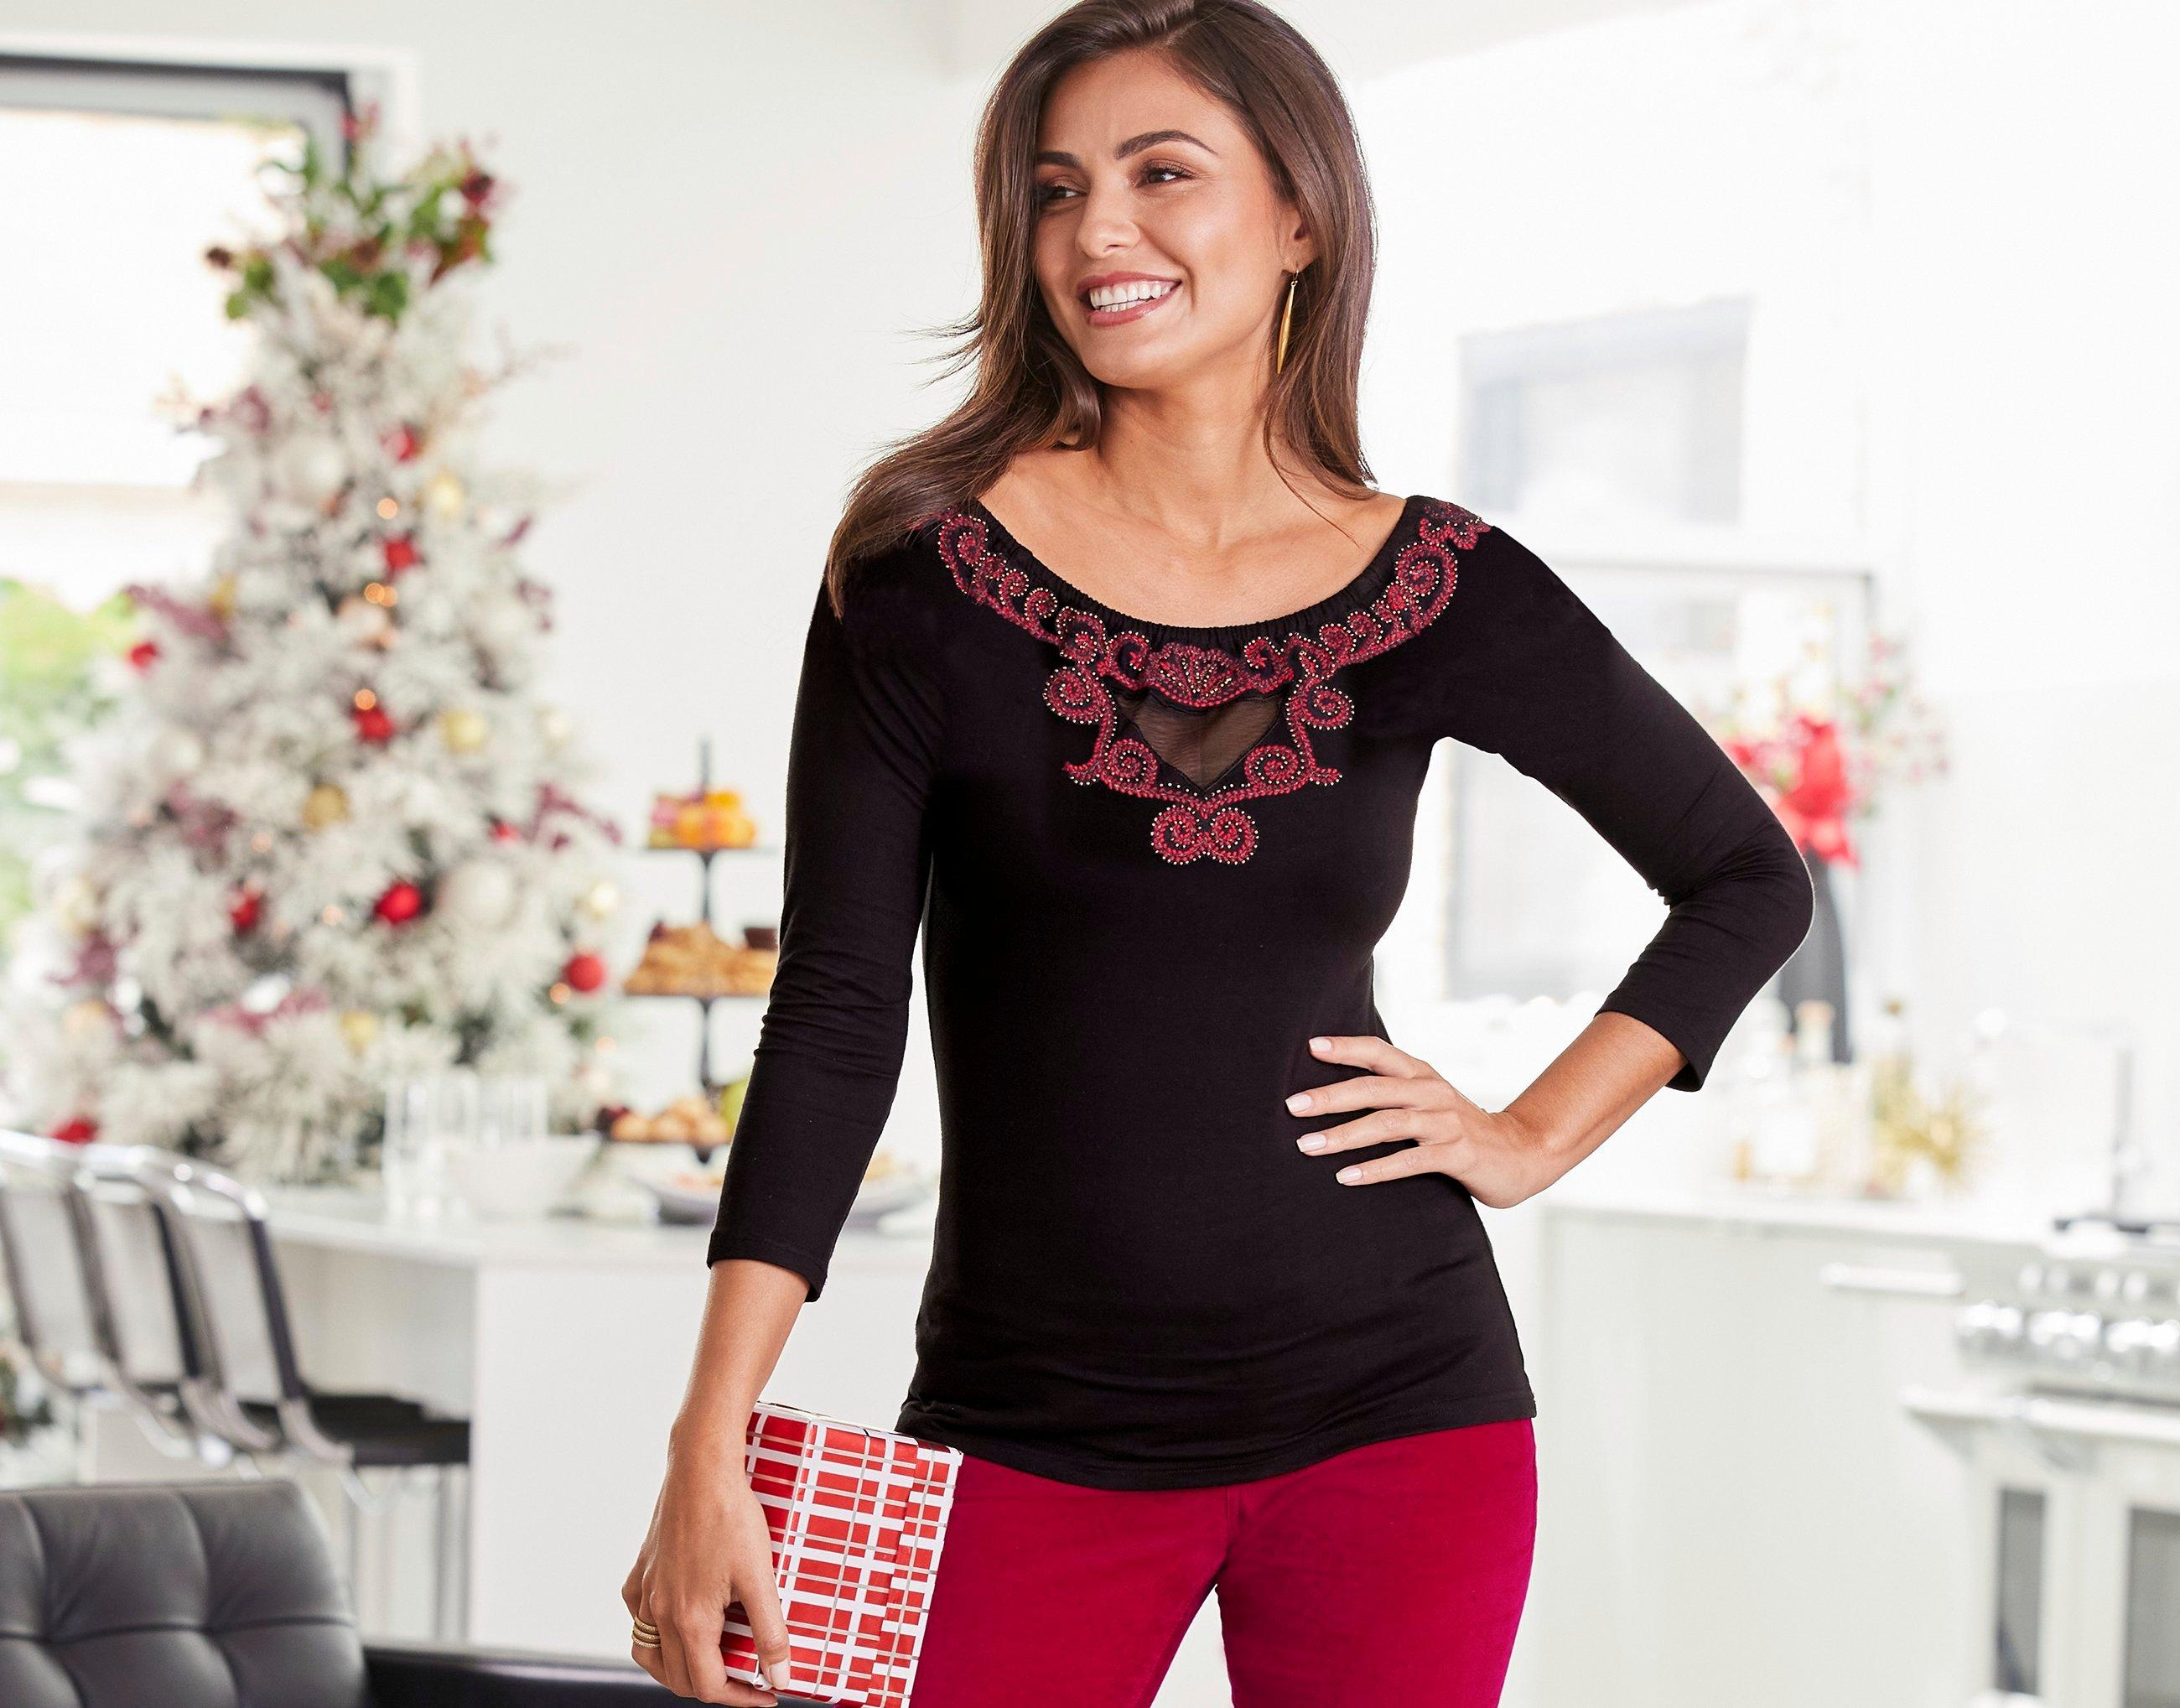 model wearing a black and red embroidered sweater and red velvet pants.